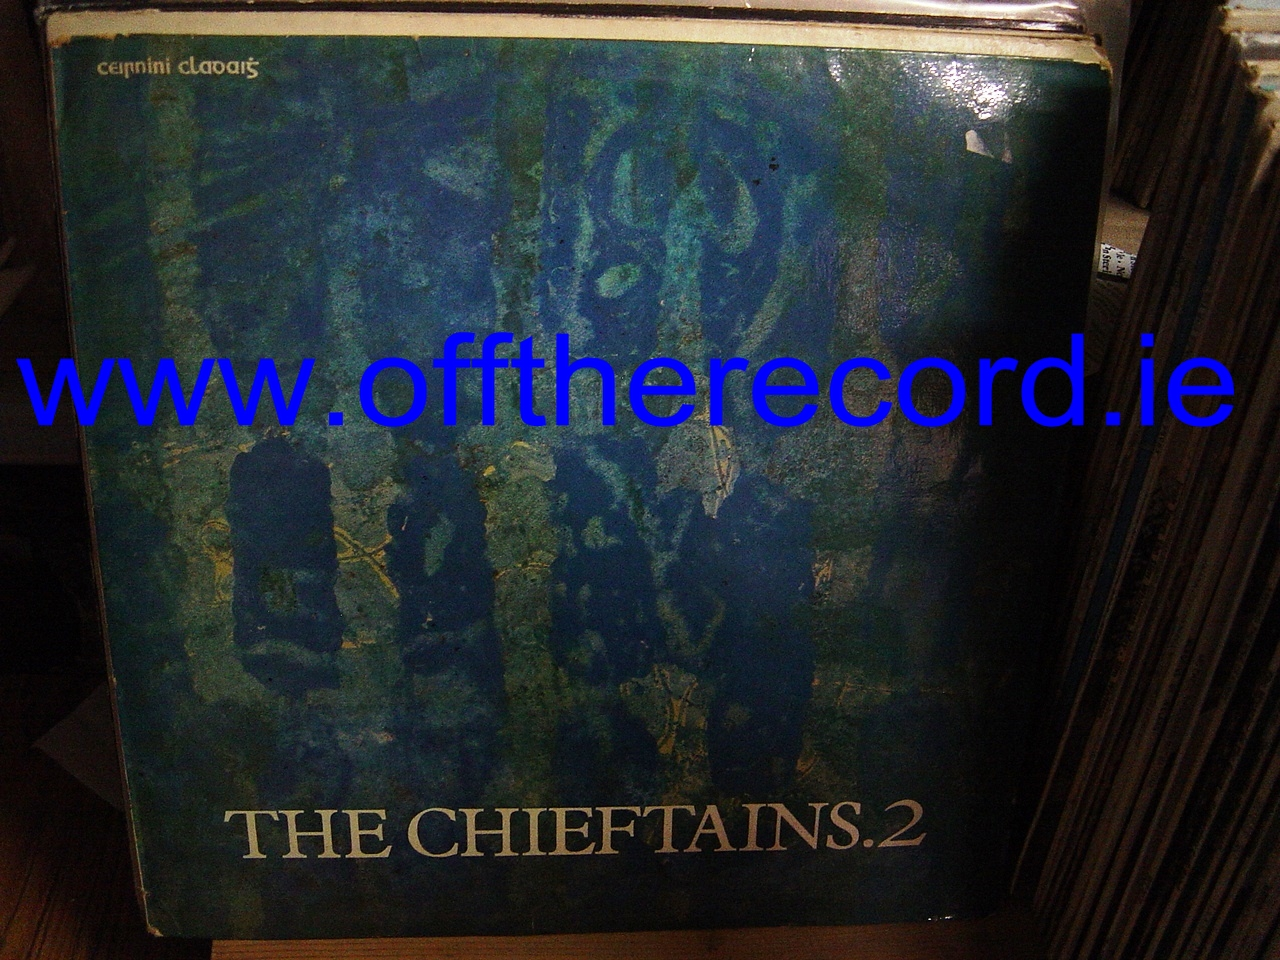 The Chieftains - 2 - Claddagh Records 1971